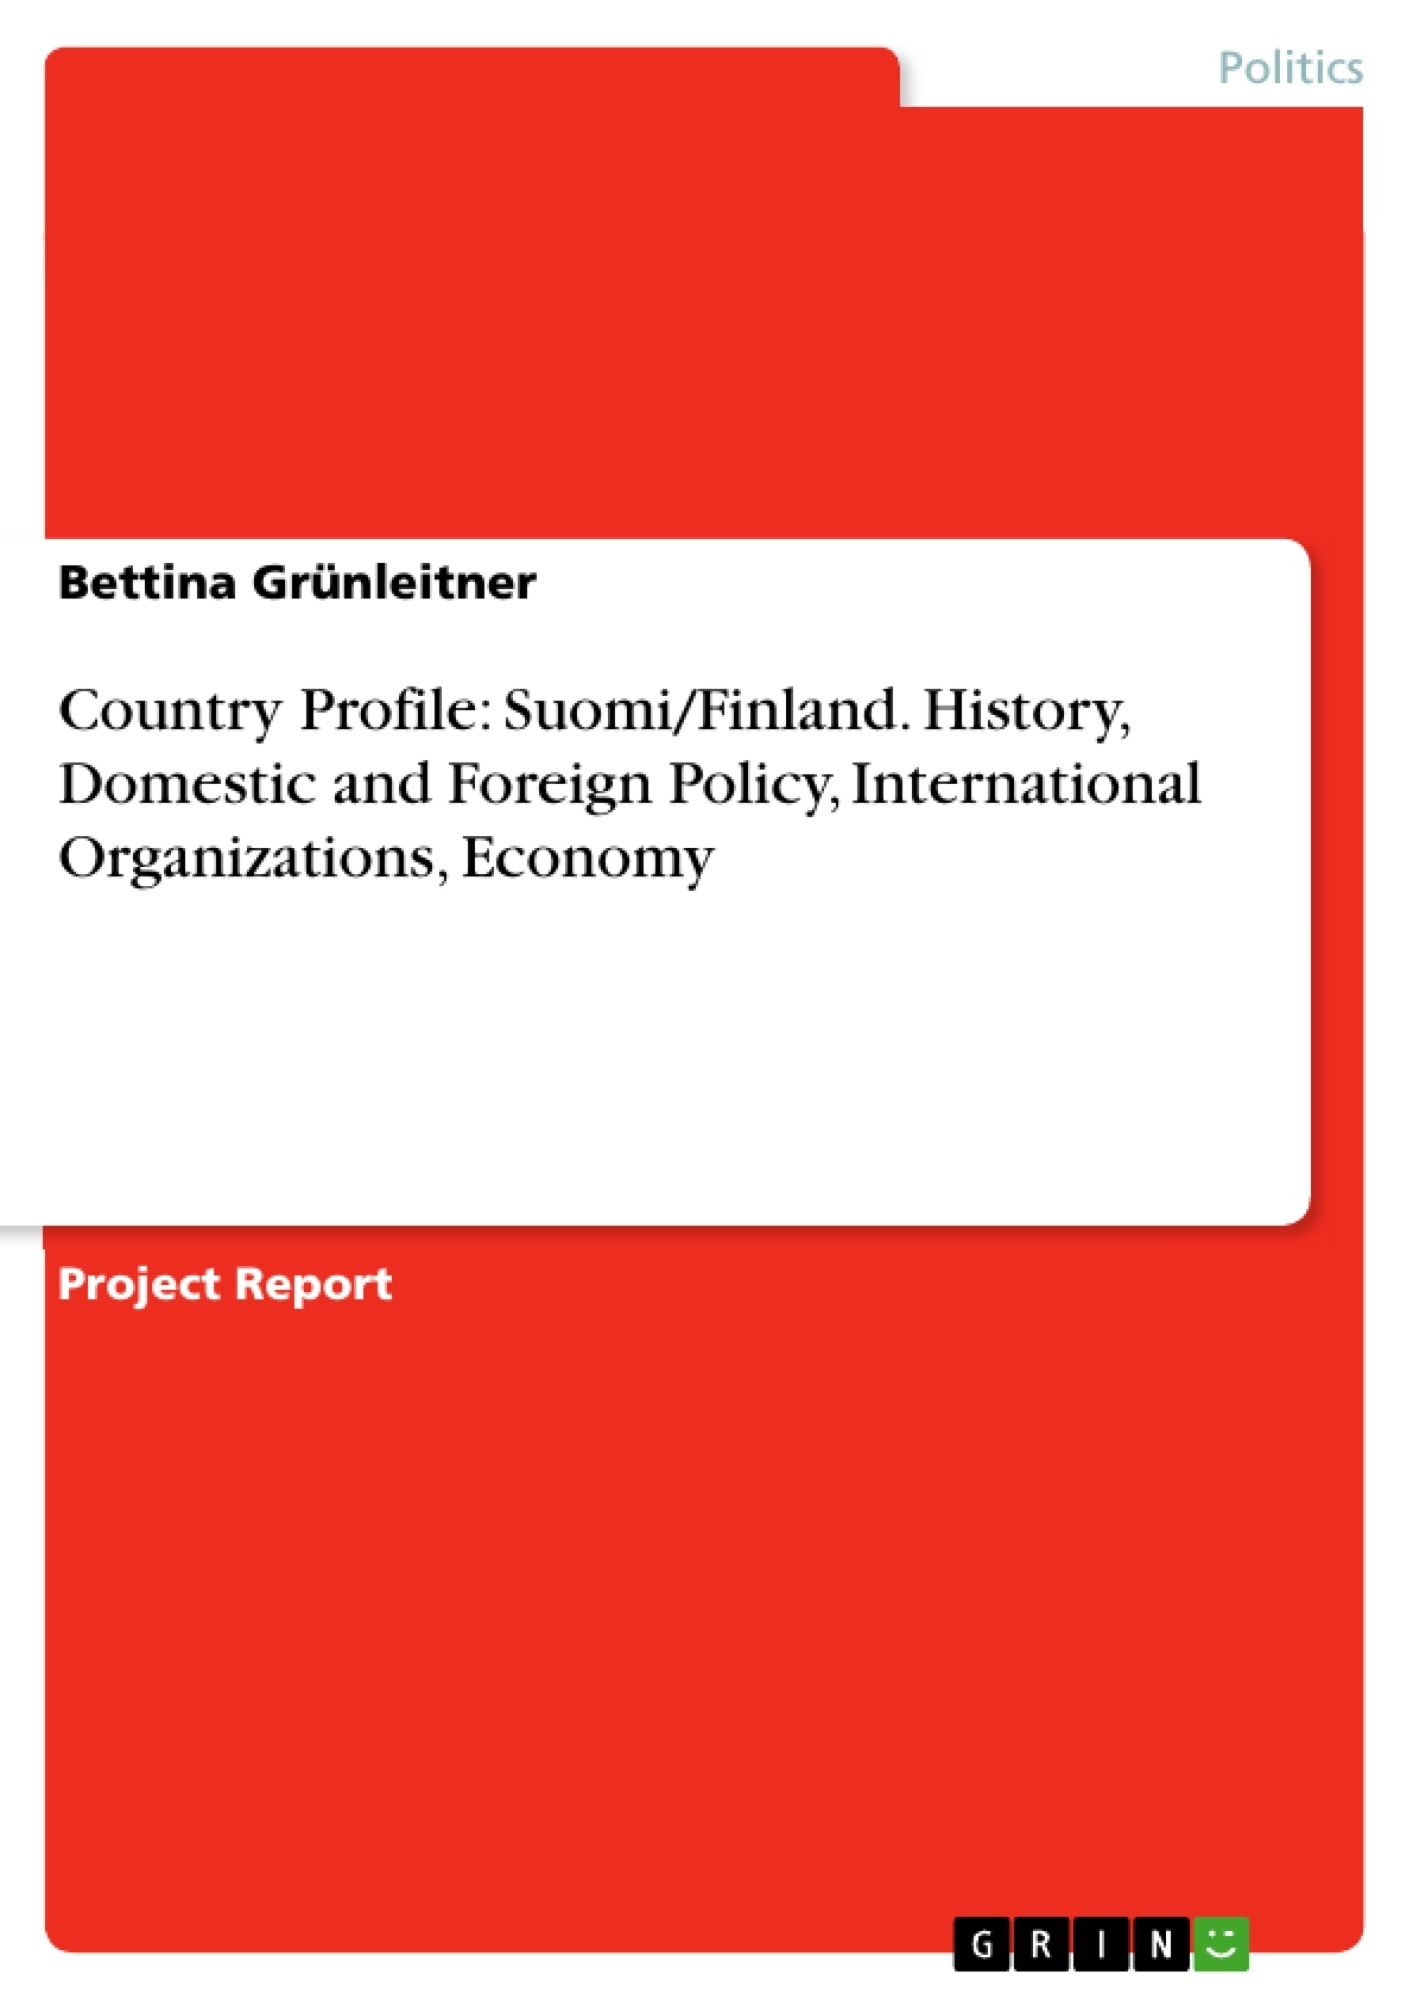 Title: Country Profile: Suomi/Finland. History, Domestic and Foreign Policy, International Organizations, Economy